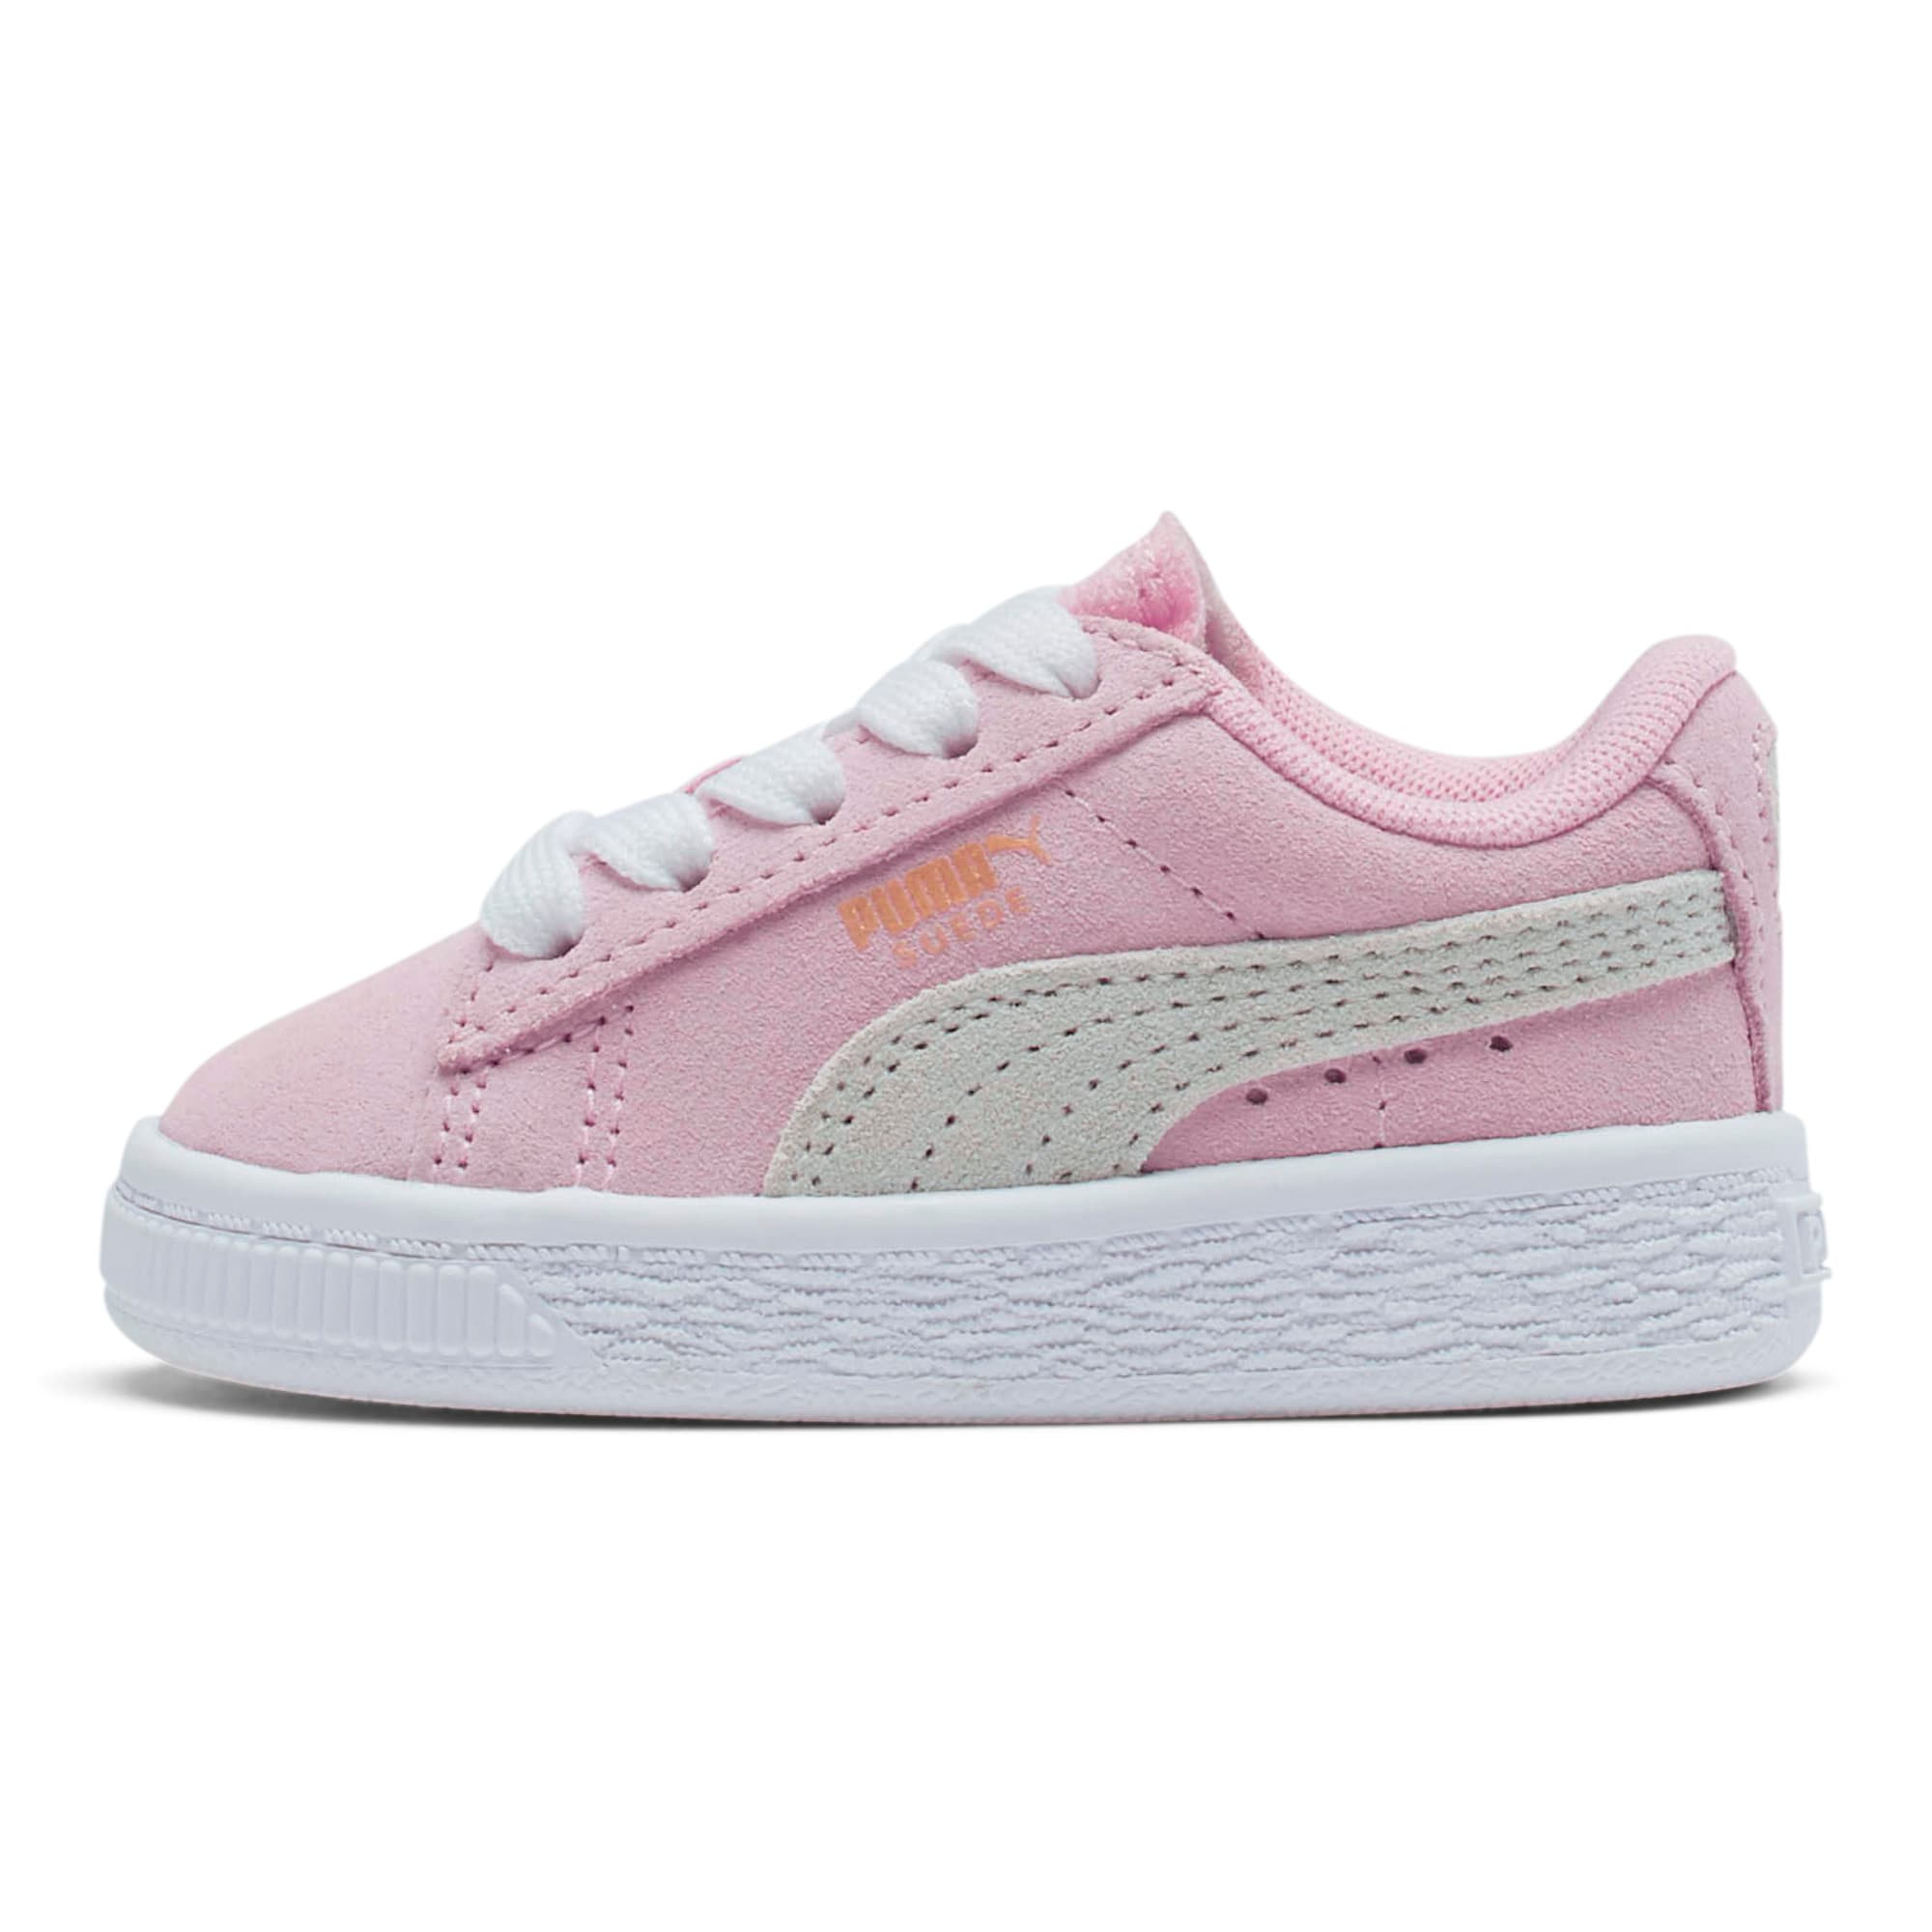 Thumbnail 1 of Puma Suede Toddler Shoes, Pink Lady-Puma White, medium